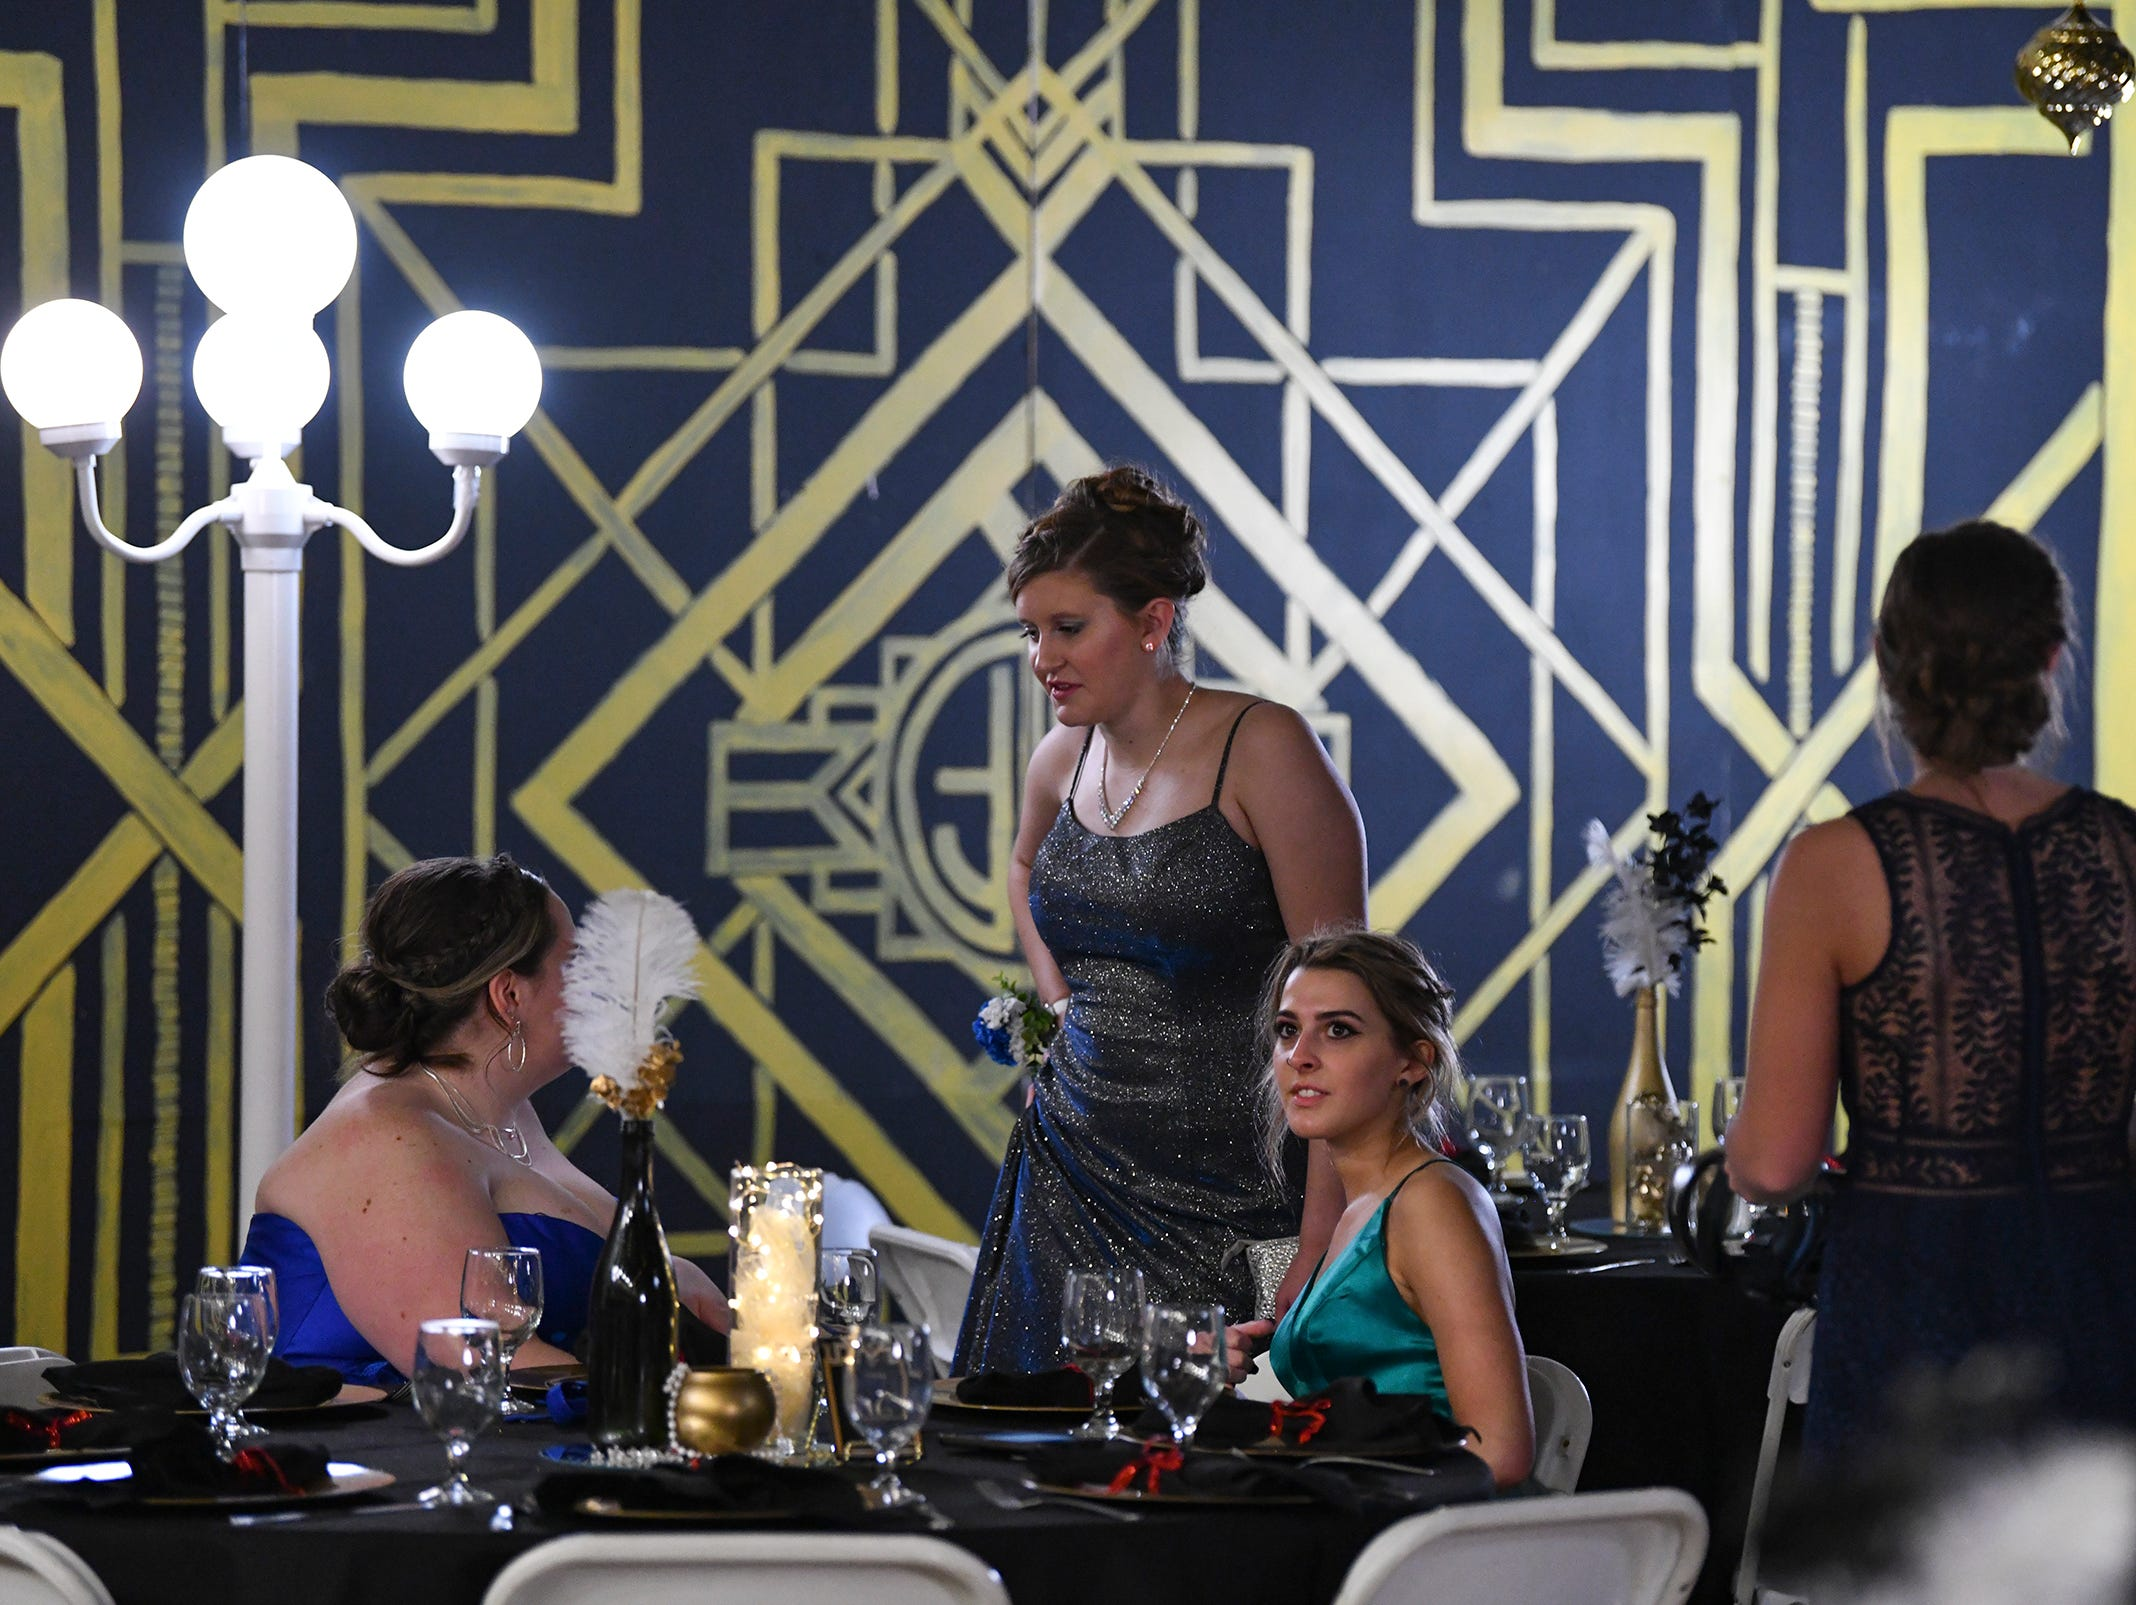 Cathedral students take their seats for their Great Gatsby-themed prom Saturday, May 4, at Cathedral High School in St. Cloud.